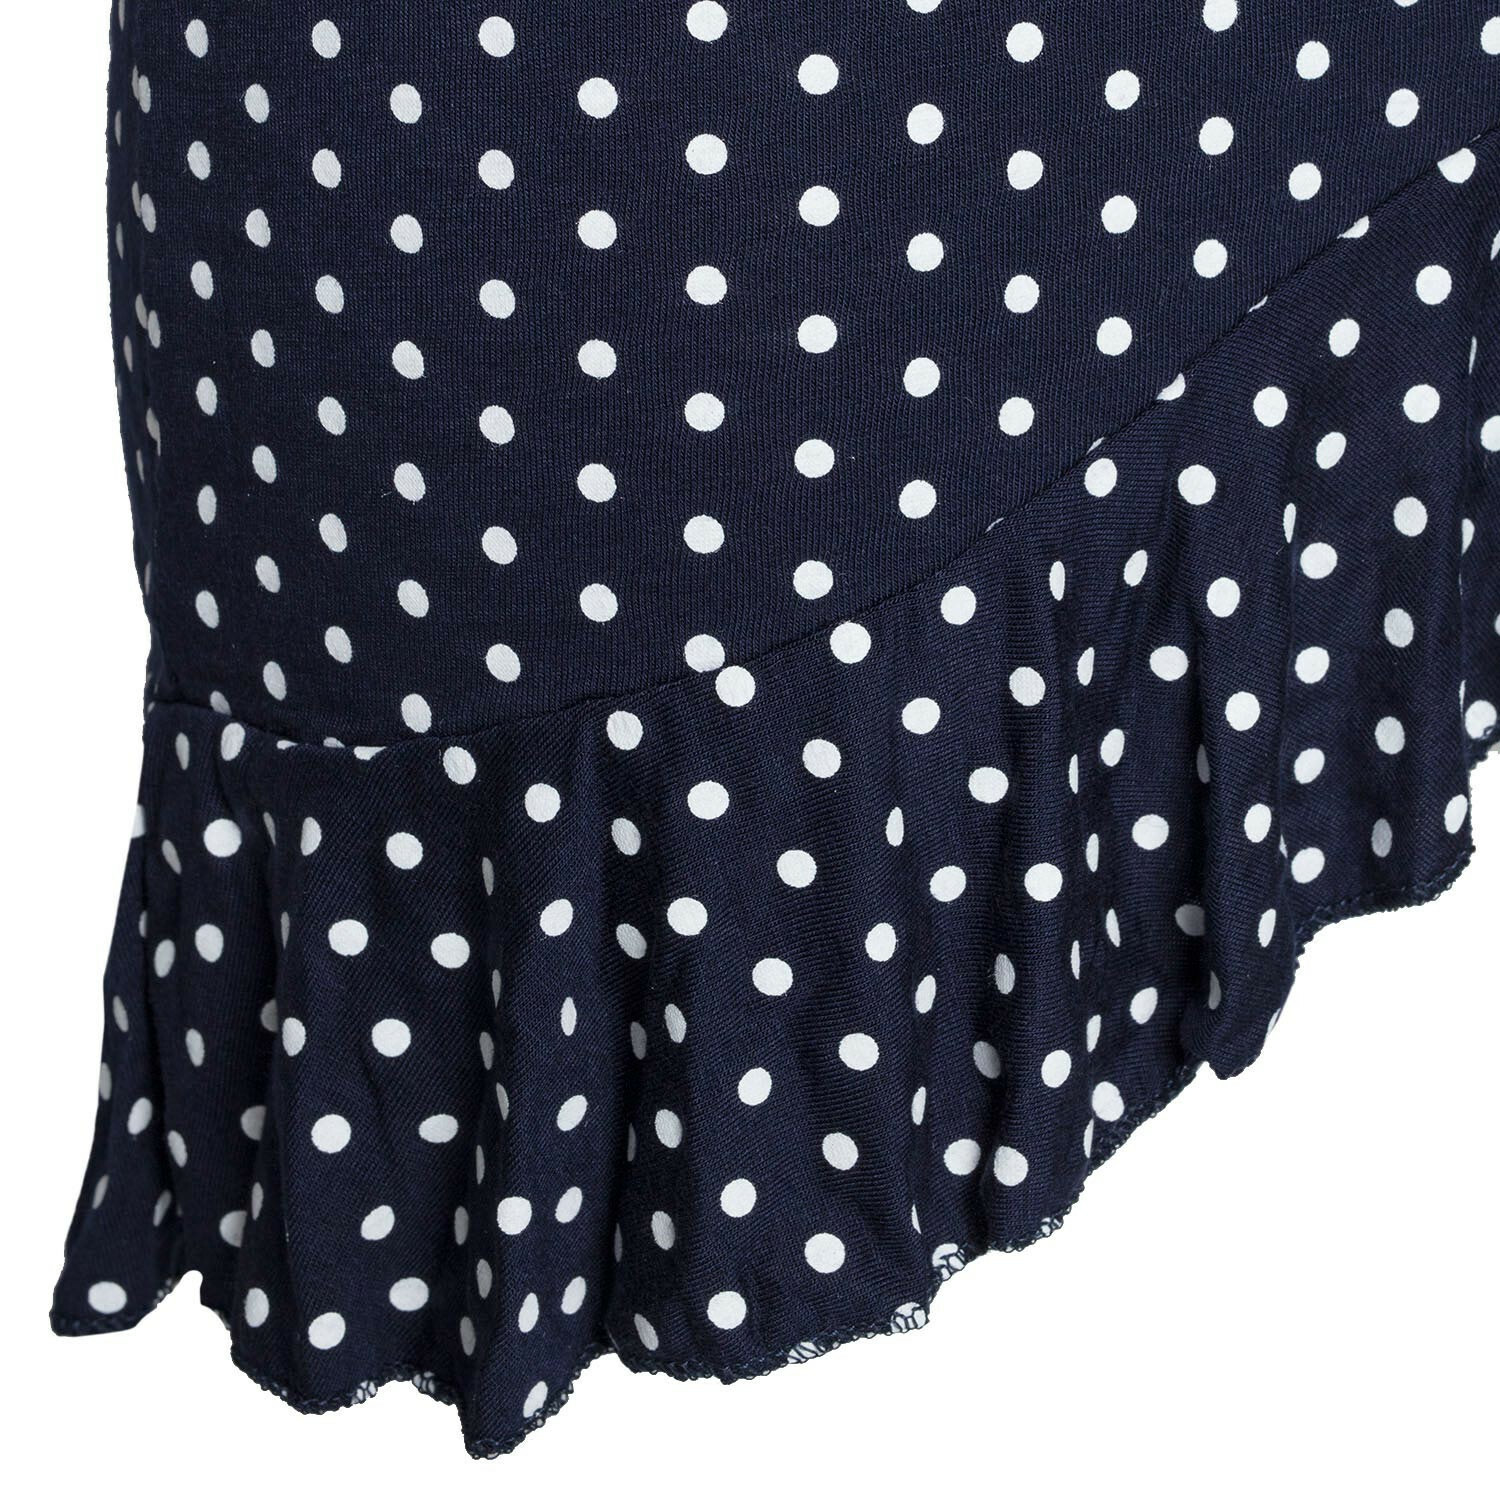 DOT ME UP DRESS NAVY